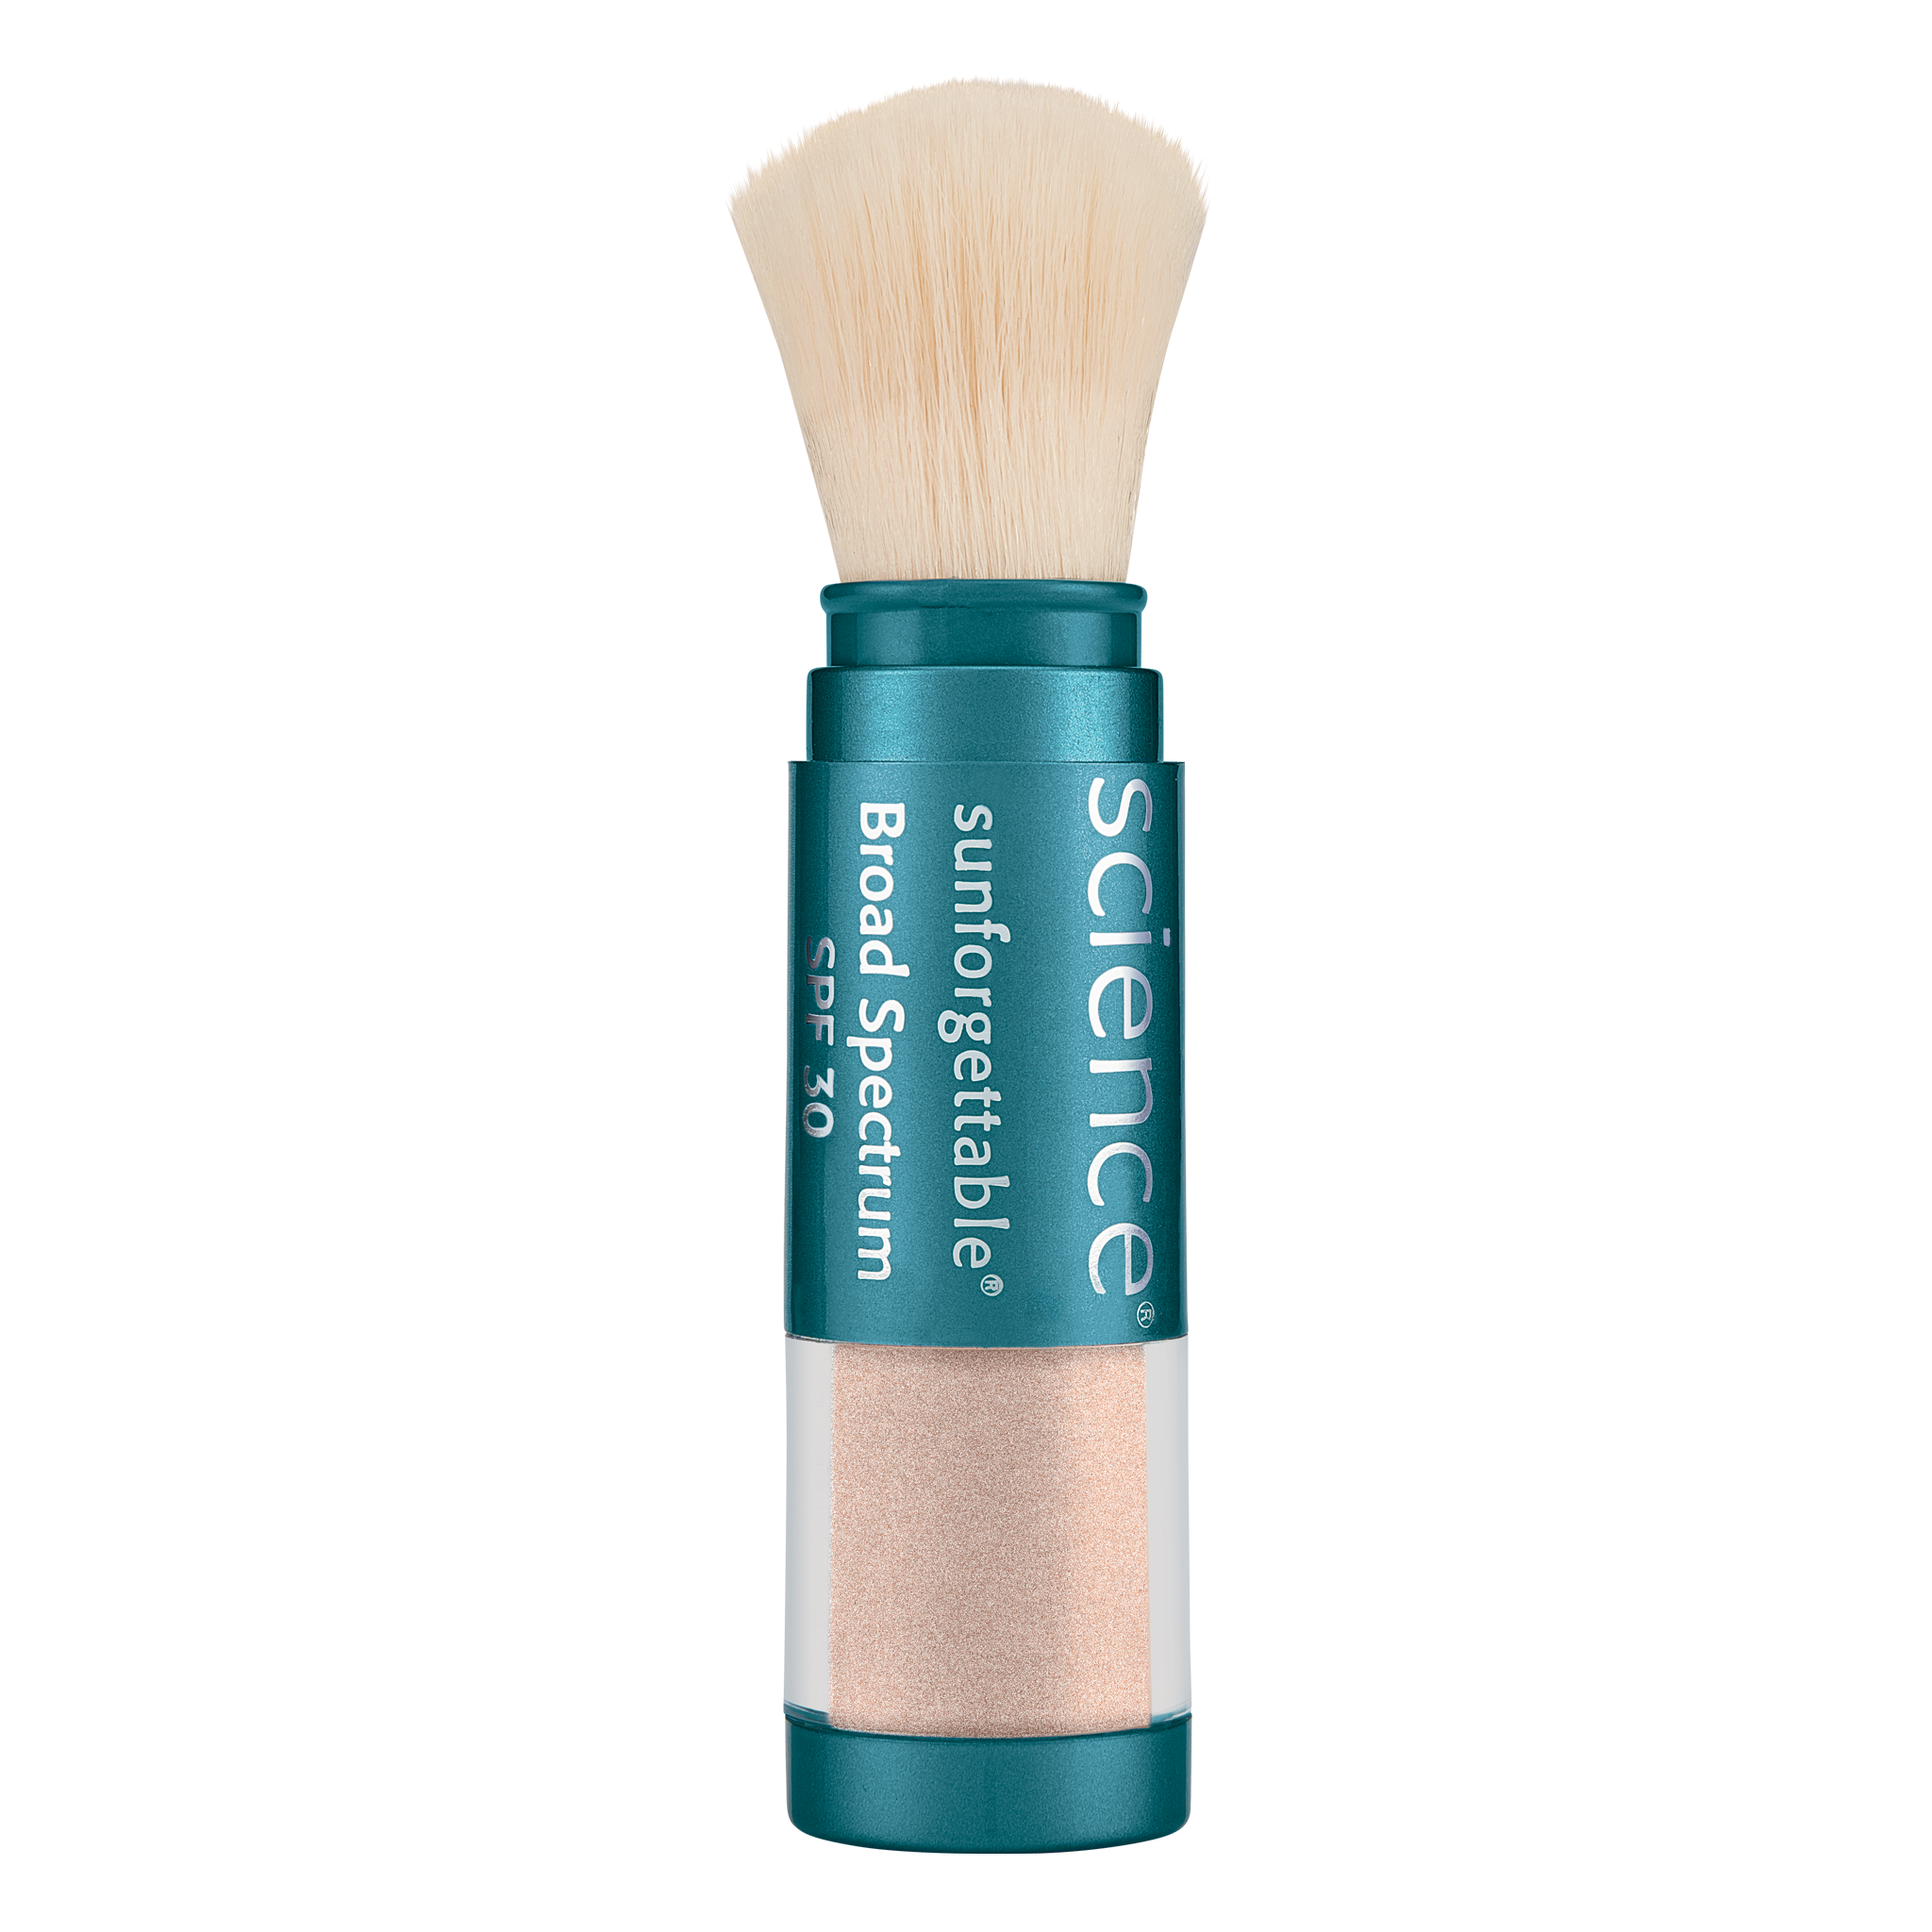 Sunforgettable® Brush-on Sunscreen SPF 30 || Medium Shimmer